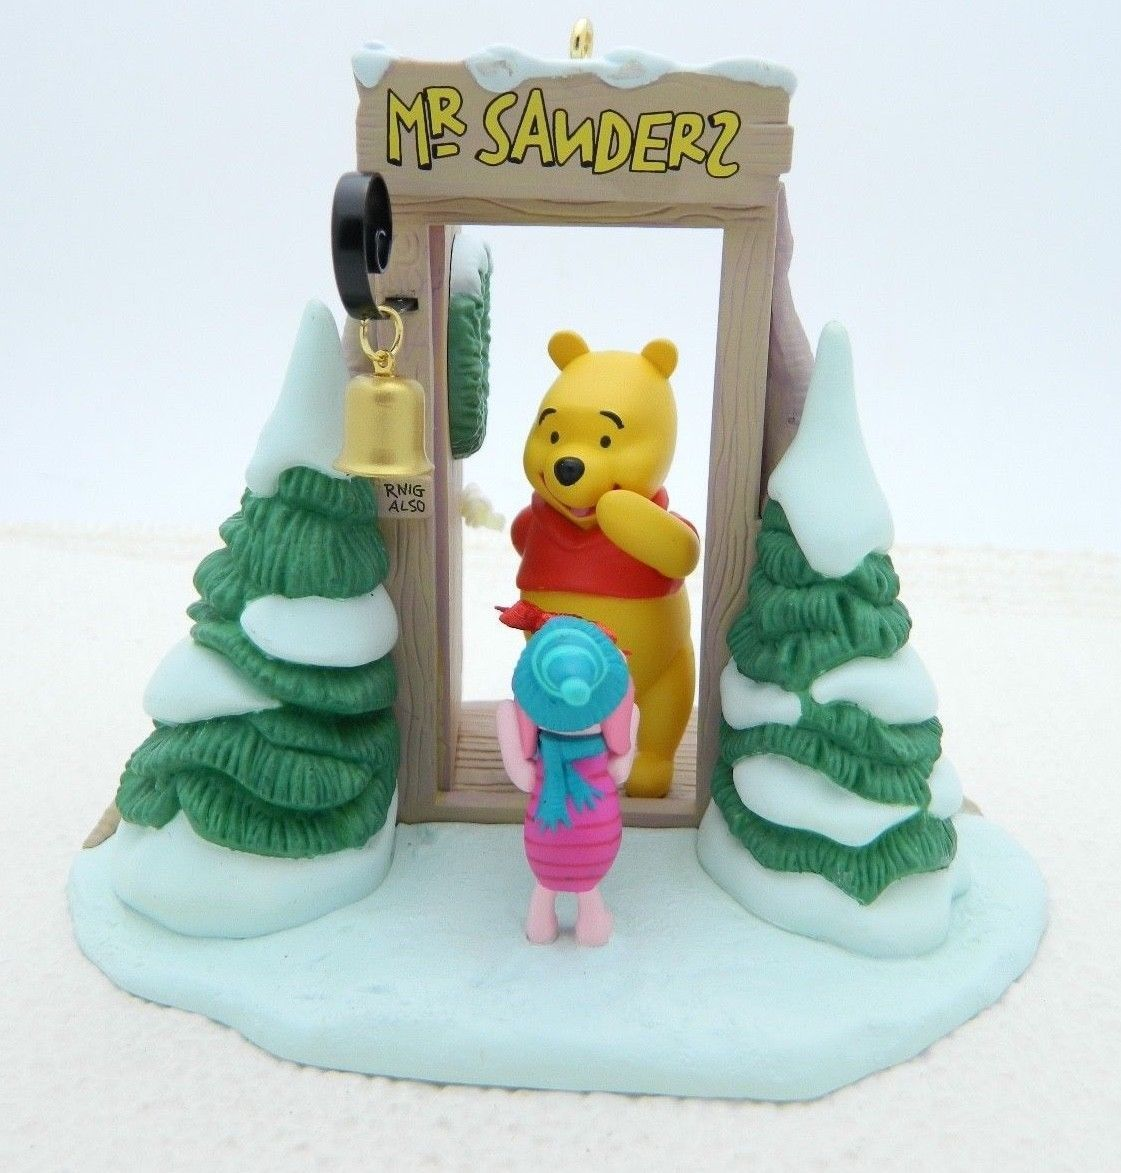 Hallmark 2005 Gift Exchange Winnie the Pooh Piglet Ornament QXD4105